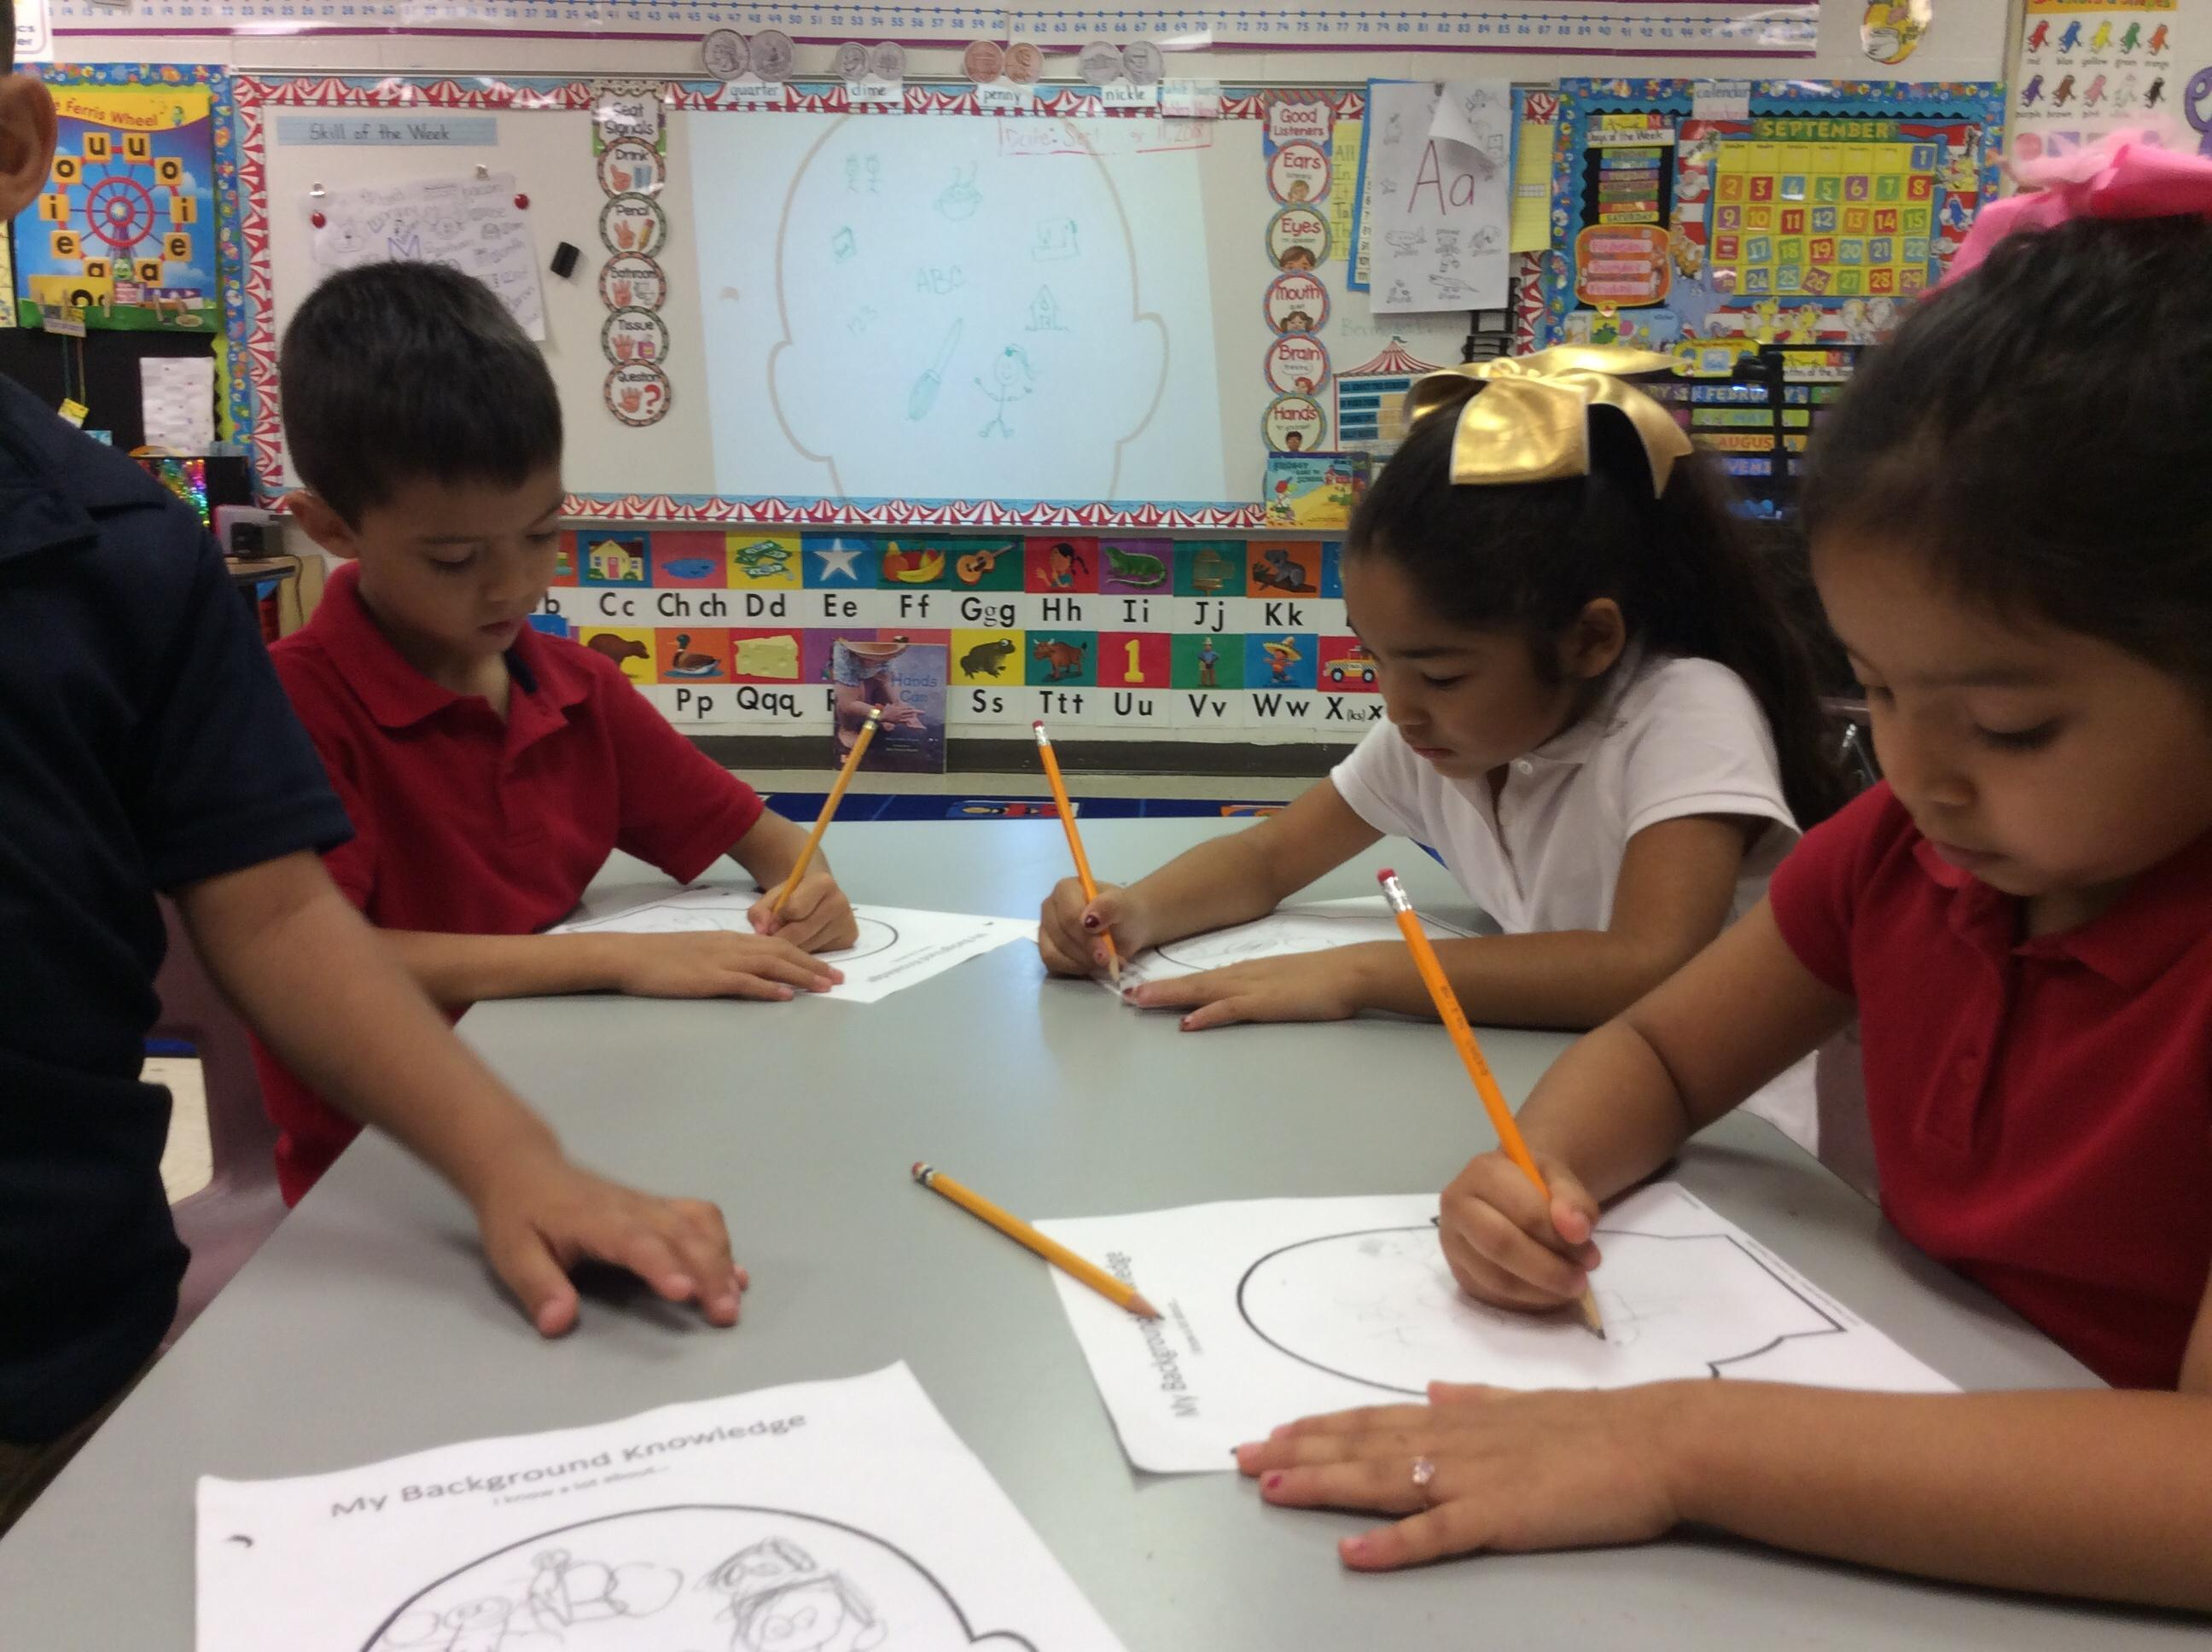 kinder students working